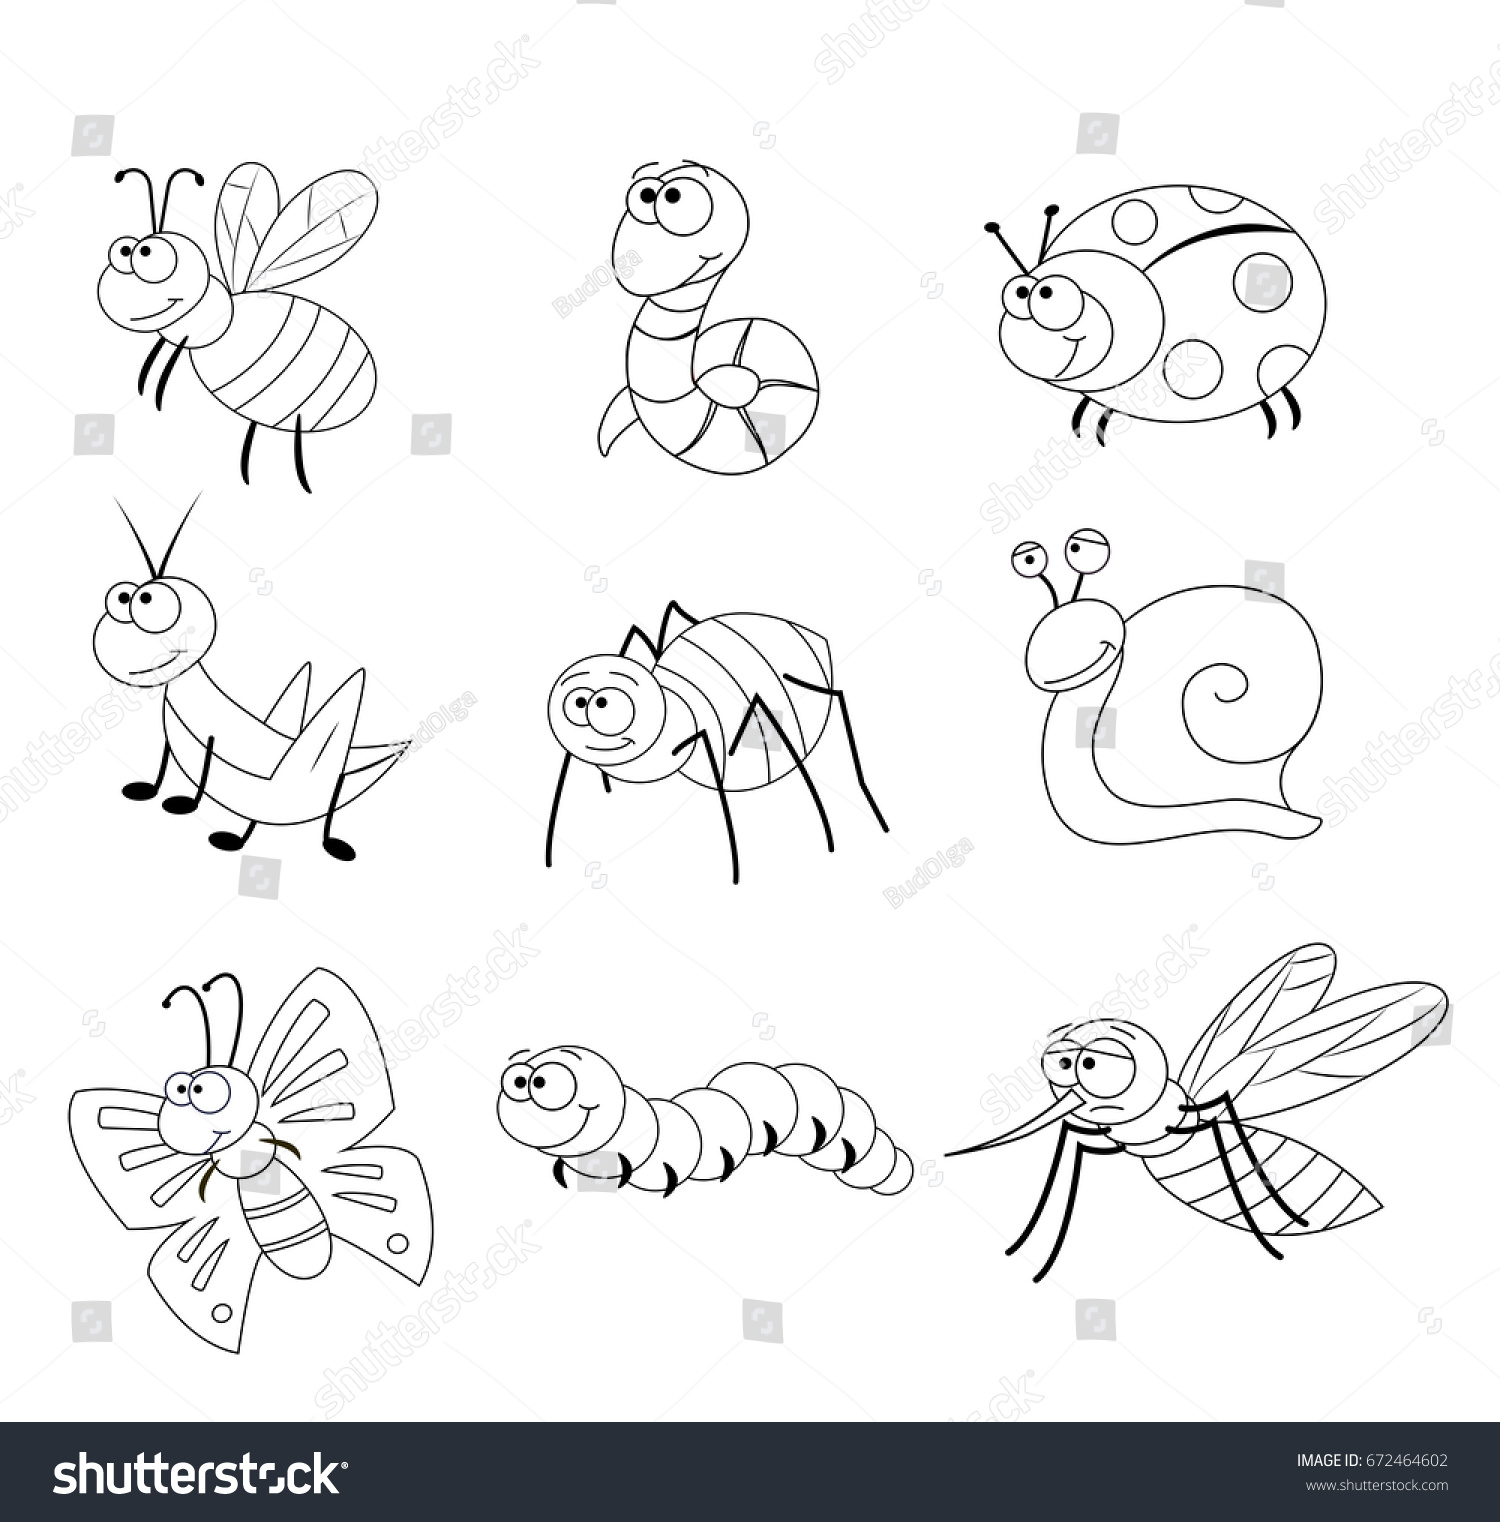 Preschool Bug Coloring Worksheet